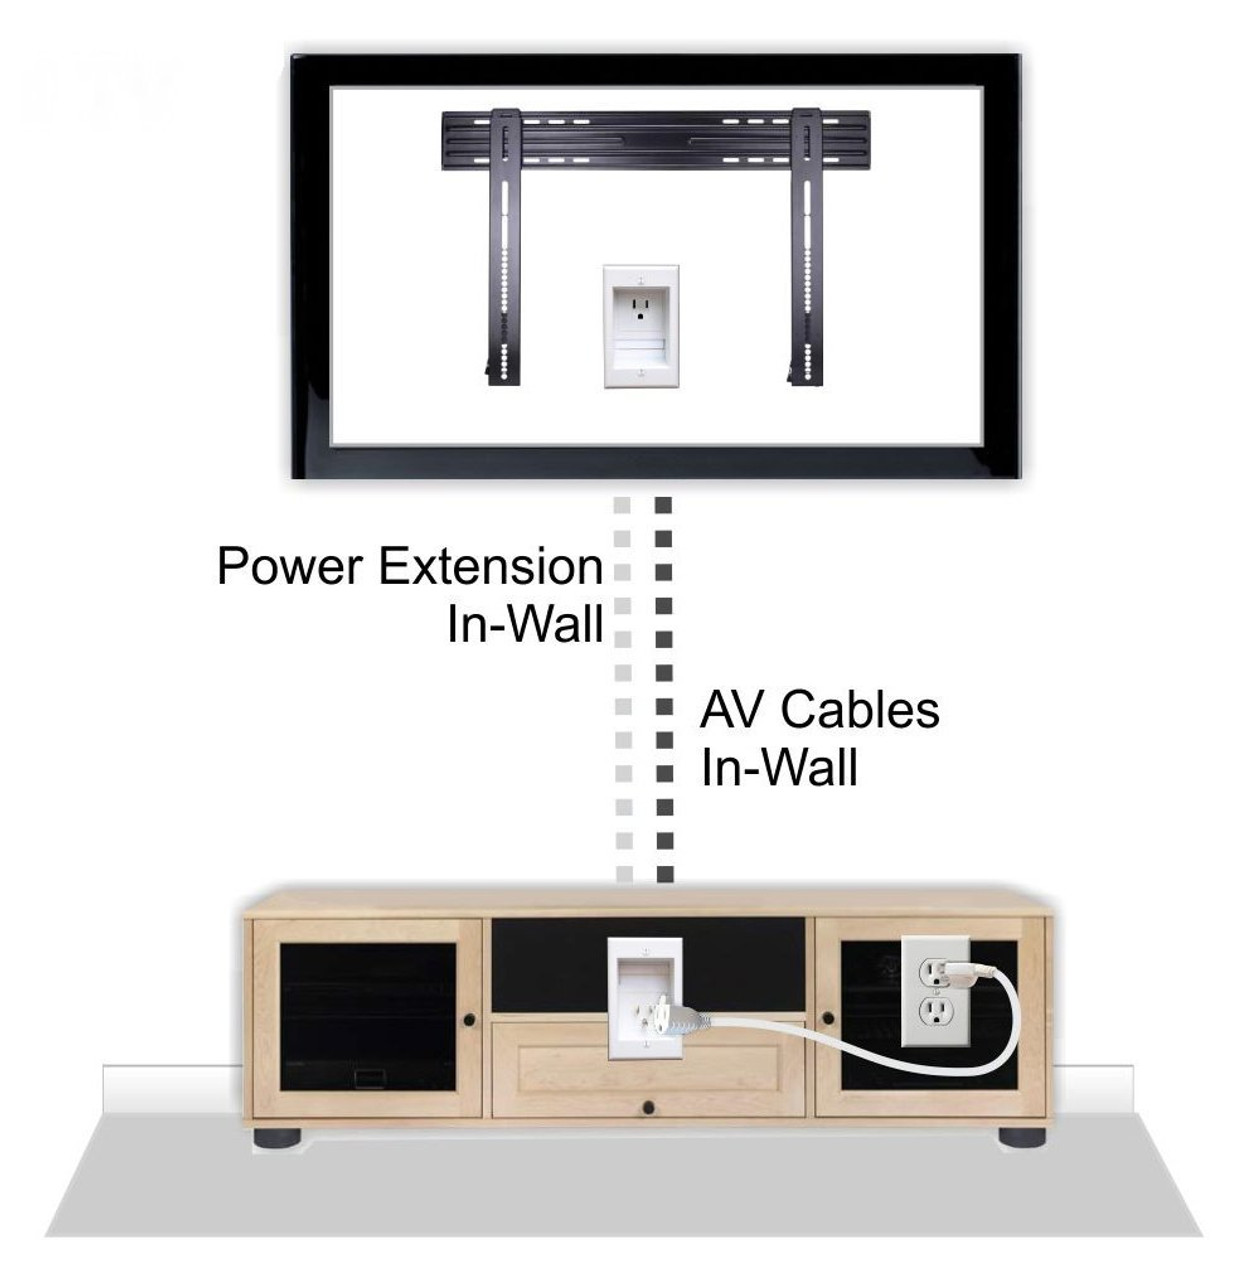 Powerbridge One Ck In Wall Cable Management System For Mounted Tvs Spacesaving Design Simplifies Inwall Wiring And Keeps Messy Cables